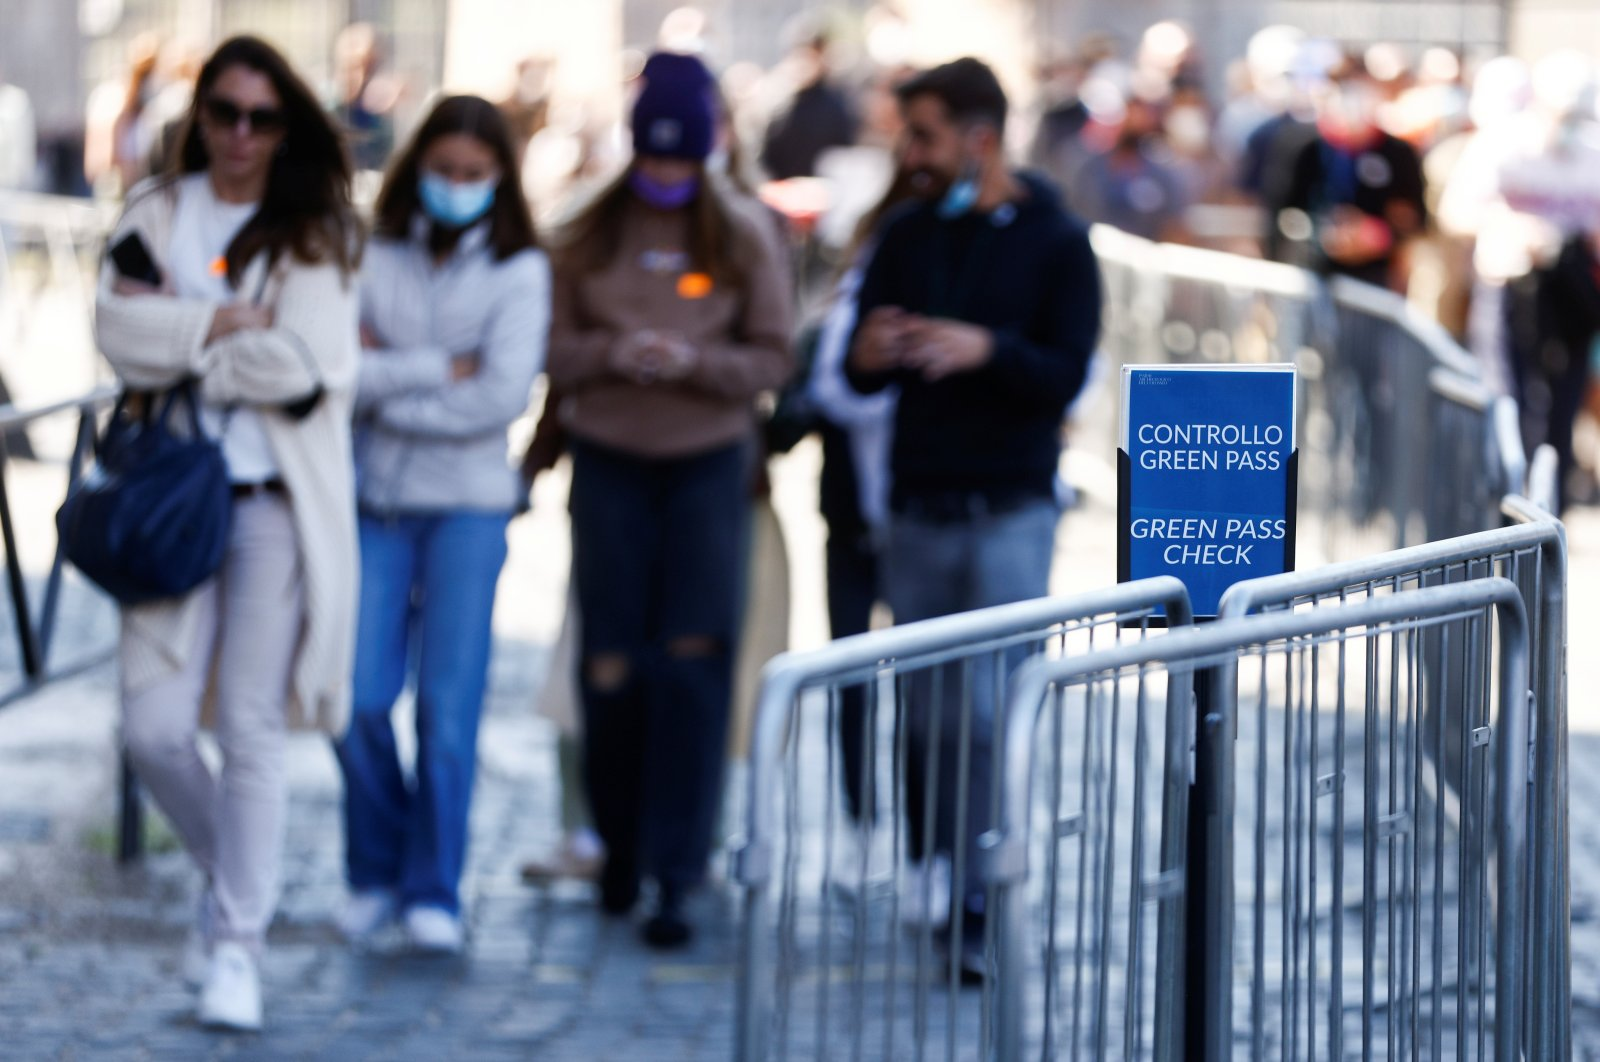 """People walk past a sign reading """"Green Pass check"""" as they enter the Colosseum as Italy prepares to become the first European country to make the COVID-19 """"Green Pass"""" mandatory for all workers, Rome, Italy, Oct. 13, 2021. (Reuters Photo)"""